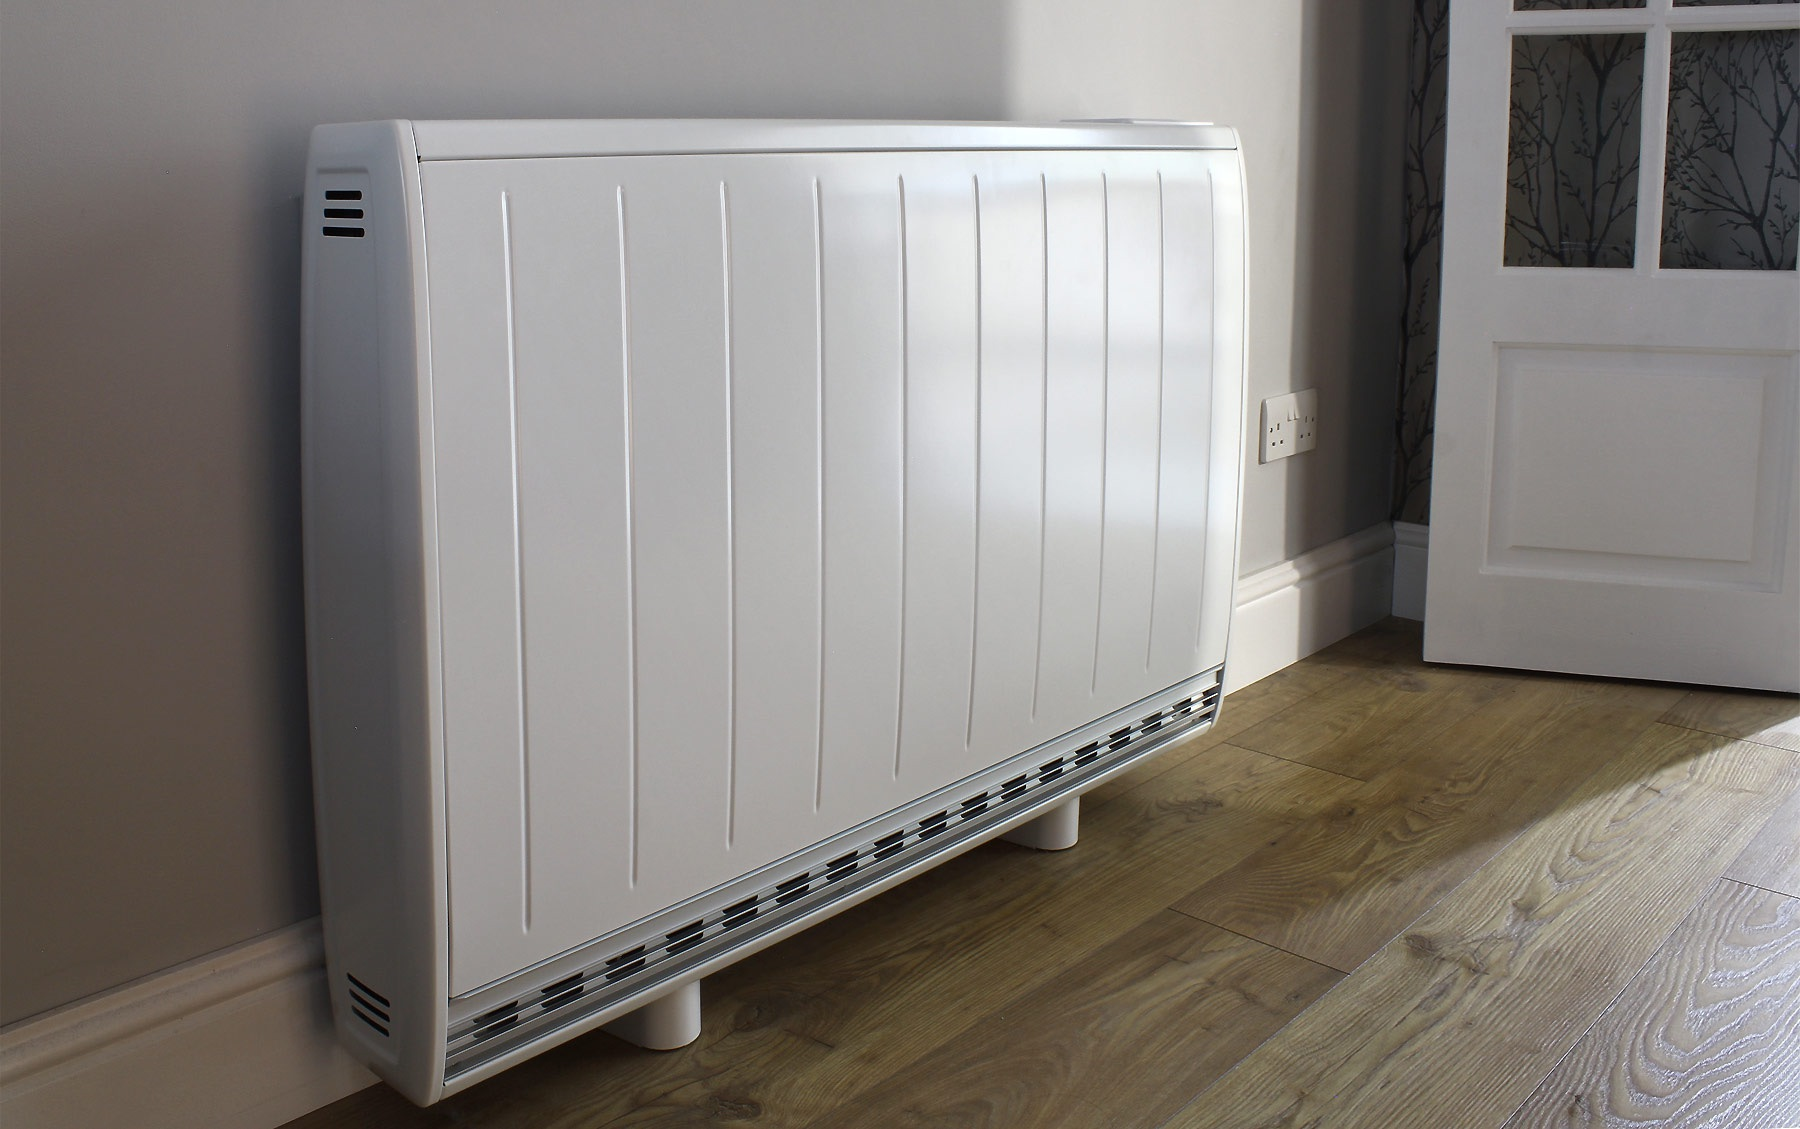 The Dimplex Quantum storage heater affixed to a wall in a modern looking corridor